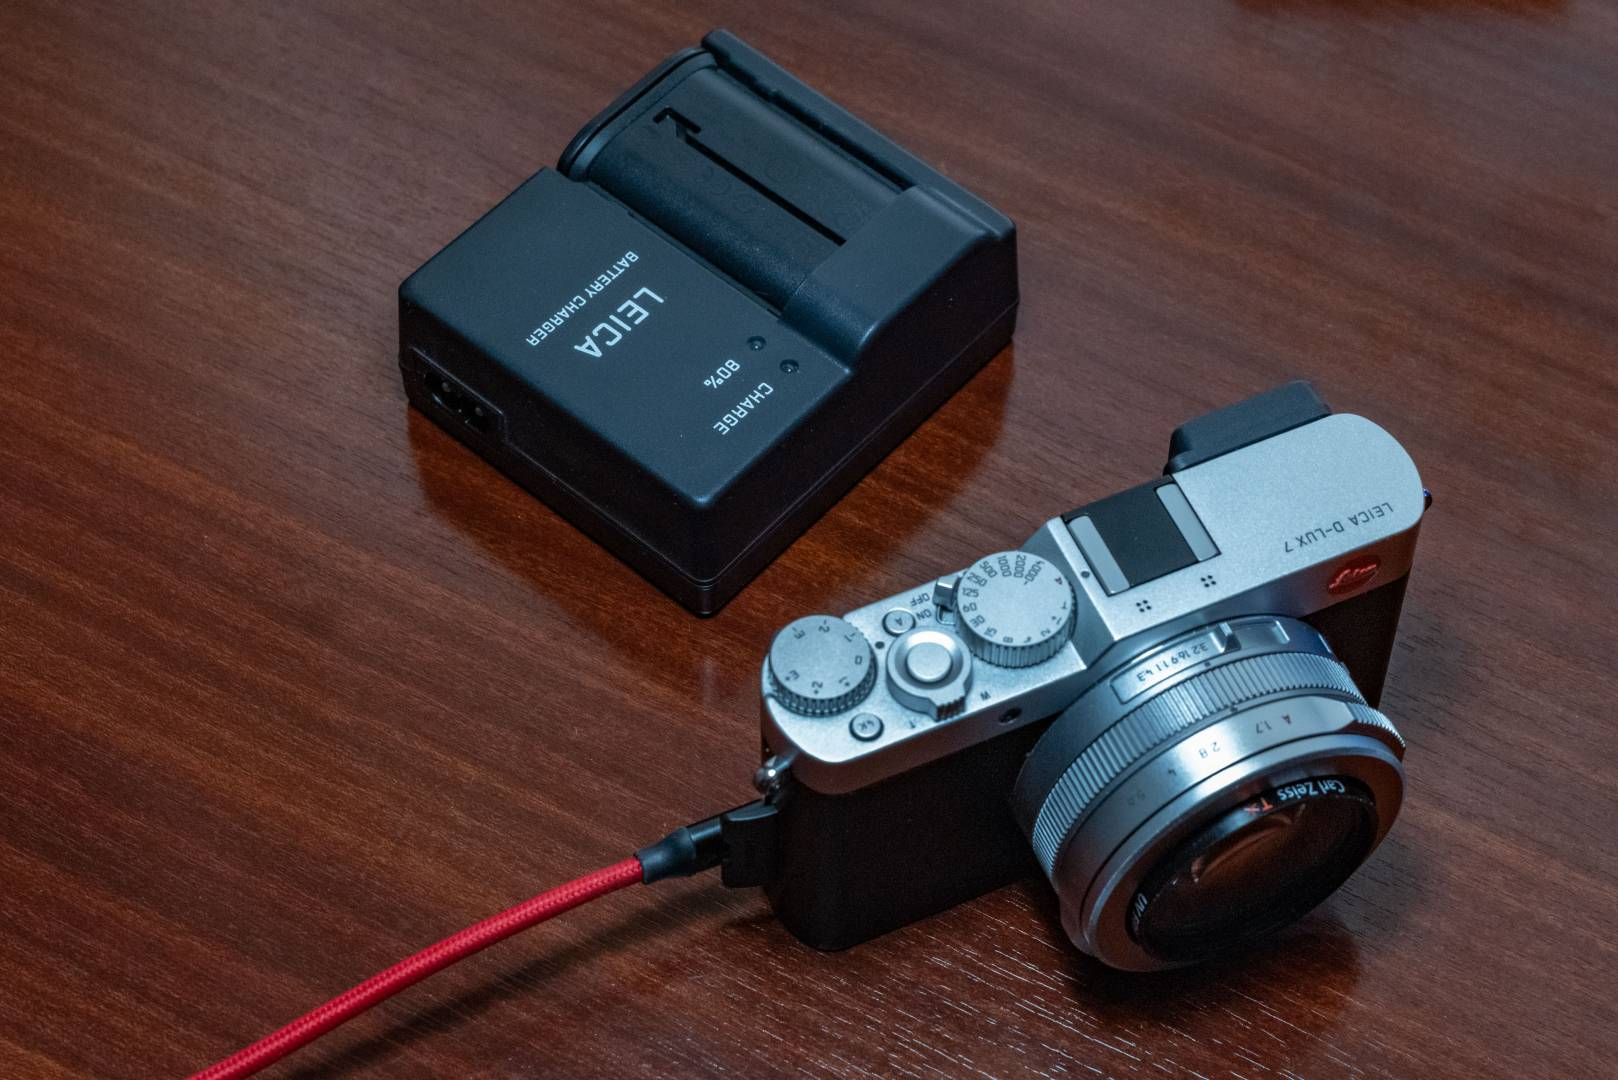 Leica's D-Lux 7 (here) and C-Lux also offer USB charging but, in this case, using the micro-USB interface. Above the camera you see the hefty charger and battery for the SL, SL2, Q and Q2. Forget to pack it at your peril because of those cameras only the SL2 is a safe bet.